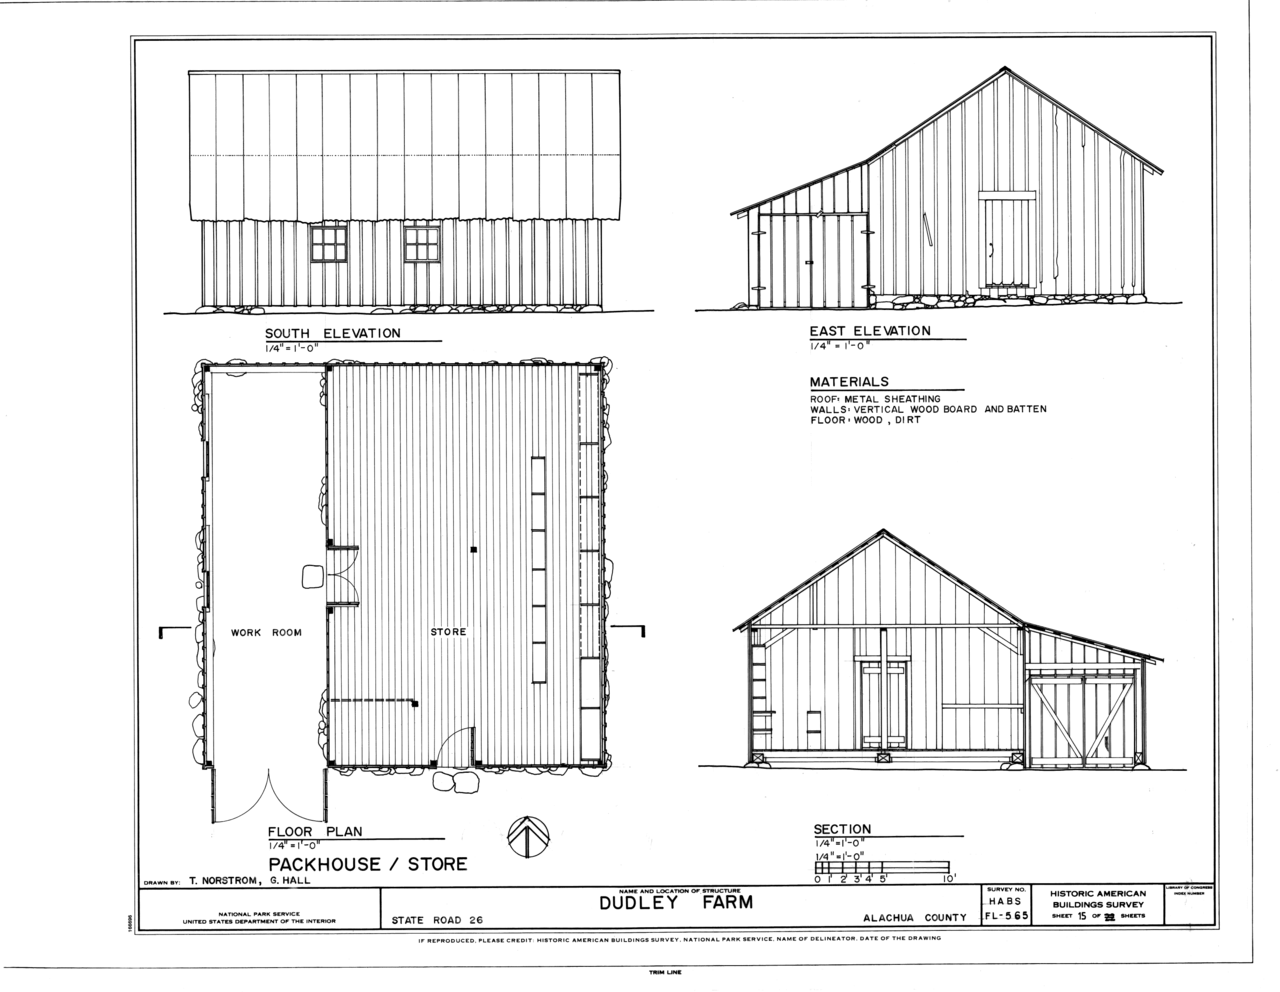 Elevation Plan Wiki : File packhouse storehouse elevations floor plan and